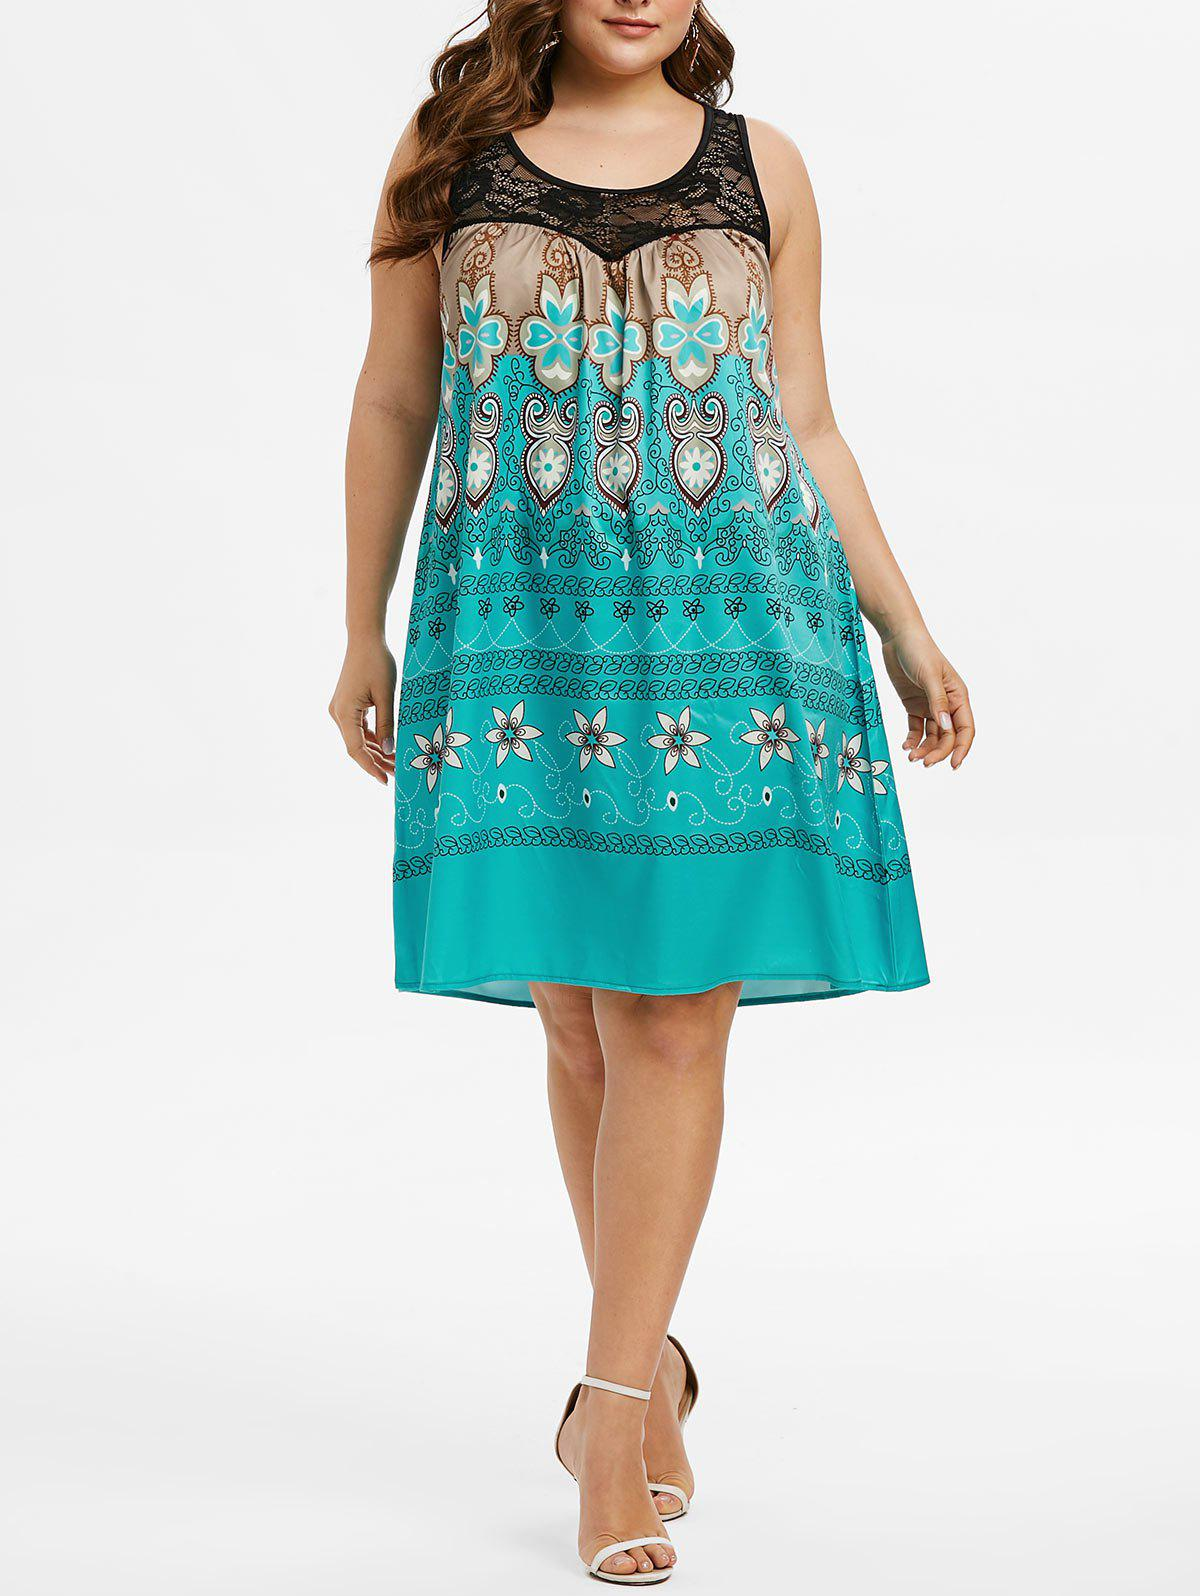 Plus Size Lace Insert Tribal Print Dress - DARK TURQUOISE L